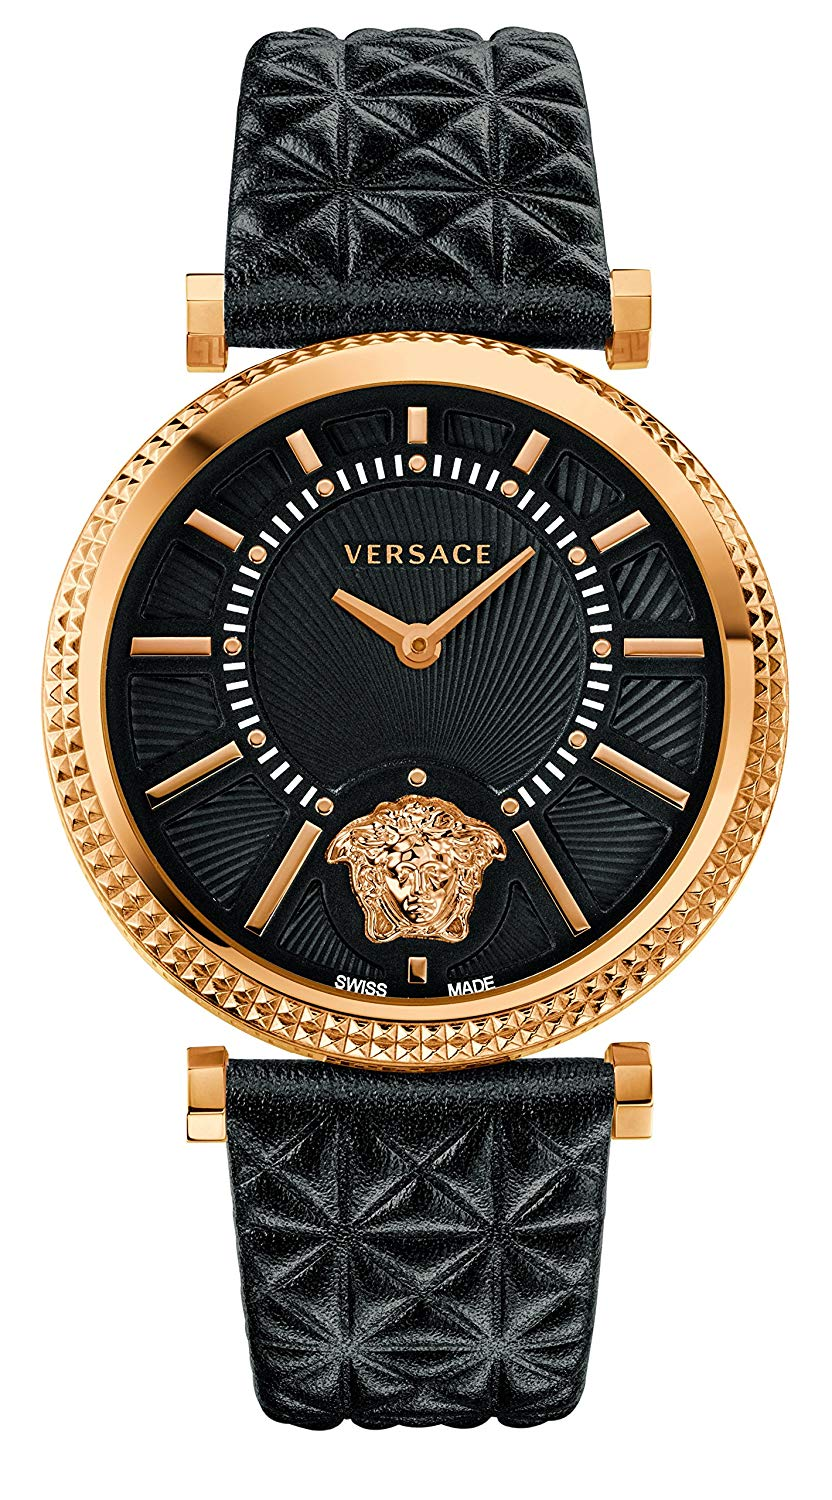 4414a7ea60f Details about Versace V-Helix Swiss Rose Gold Tone Black Dial Leather  Women s Watch VQG040015